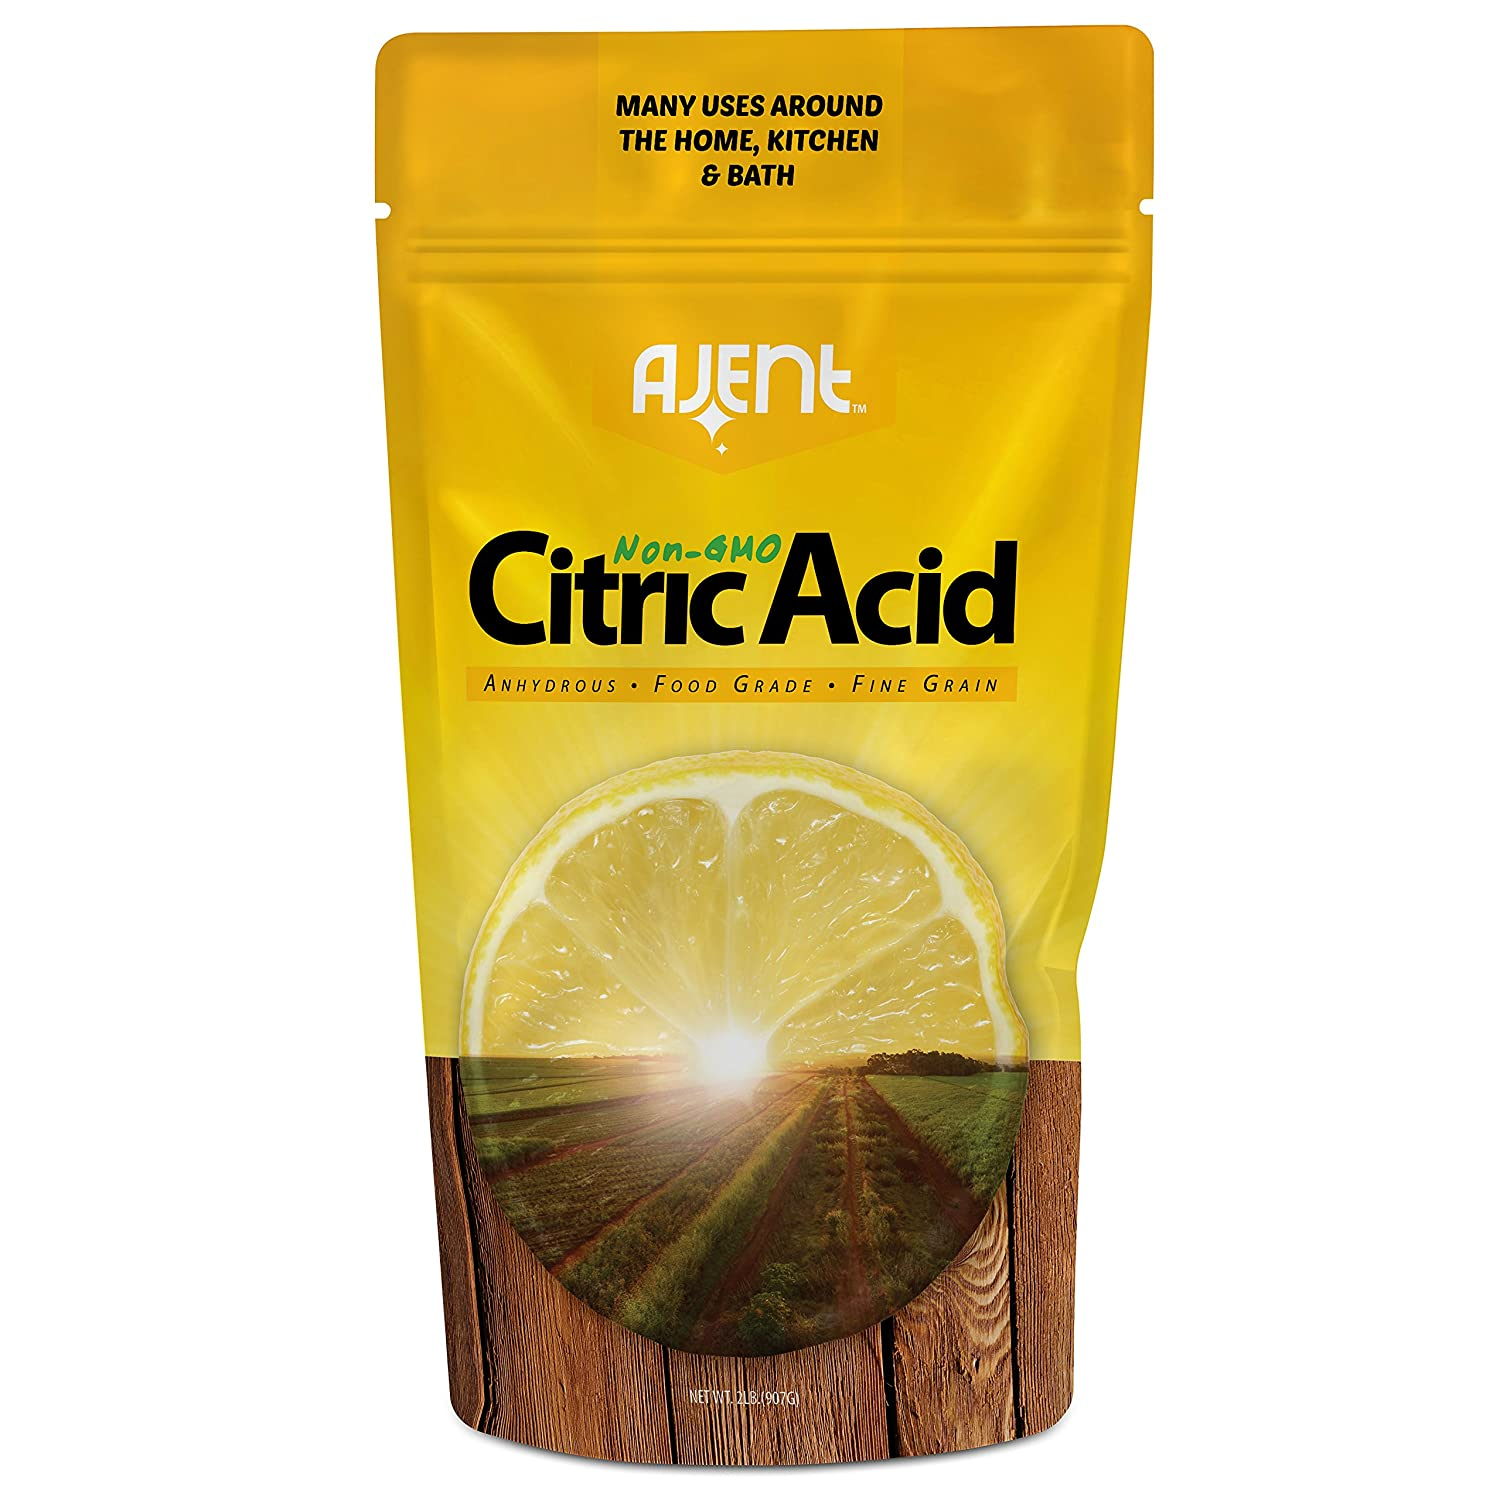 Ajent Citric Acid 100% Pure Food Grade Non-GMO (Approved for Organic Foods) 2 Pound